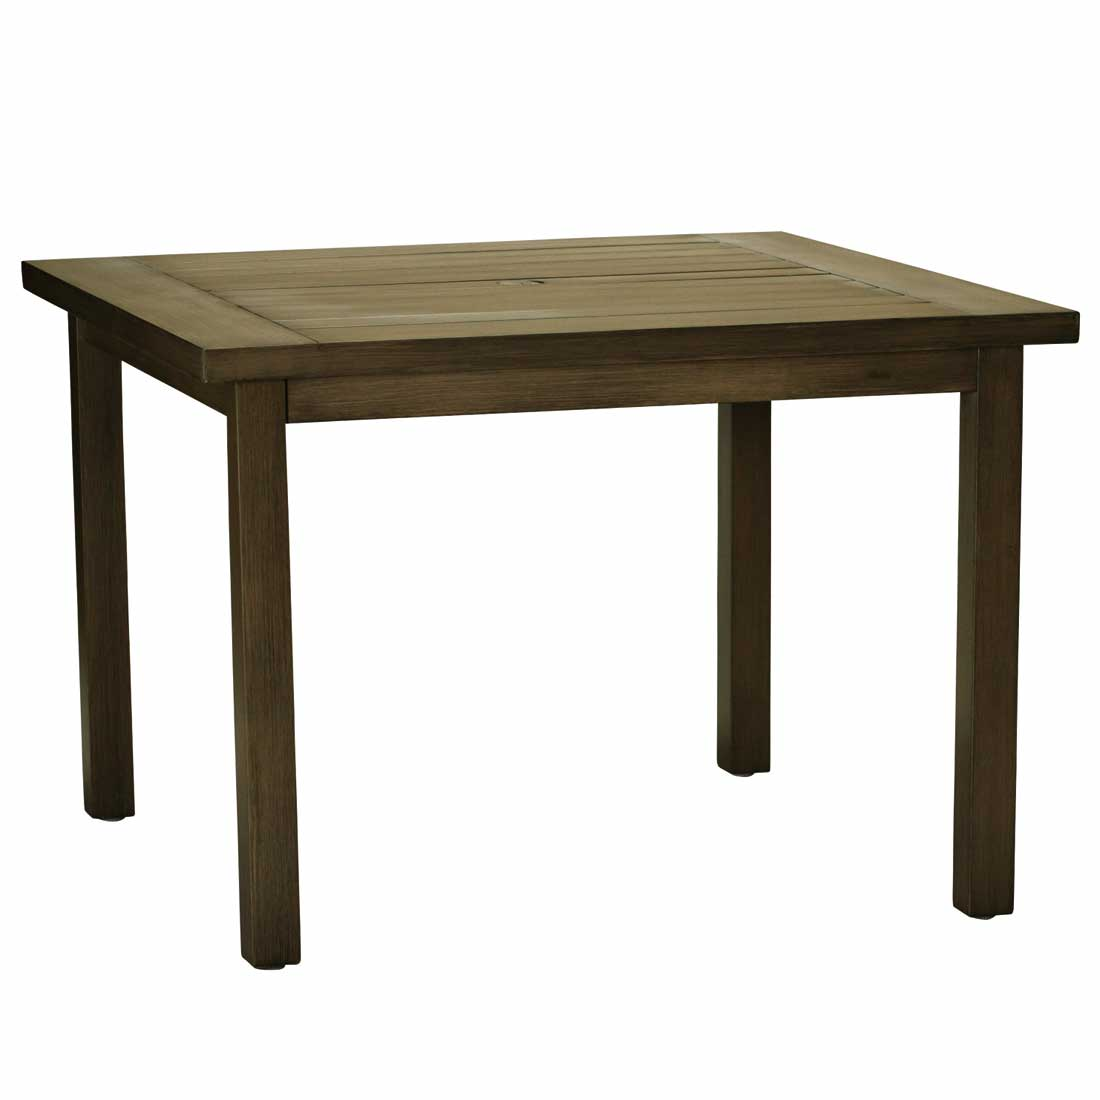 Dining Table Square: Club Square Aluminum Outdoor Dining Tables